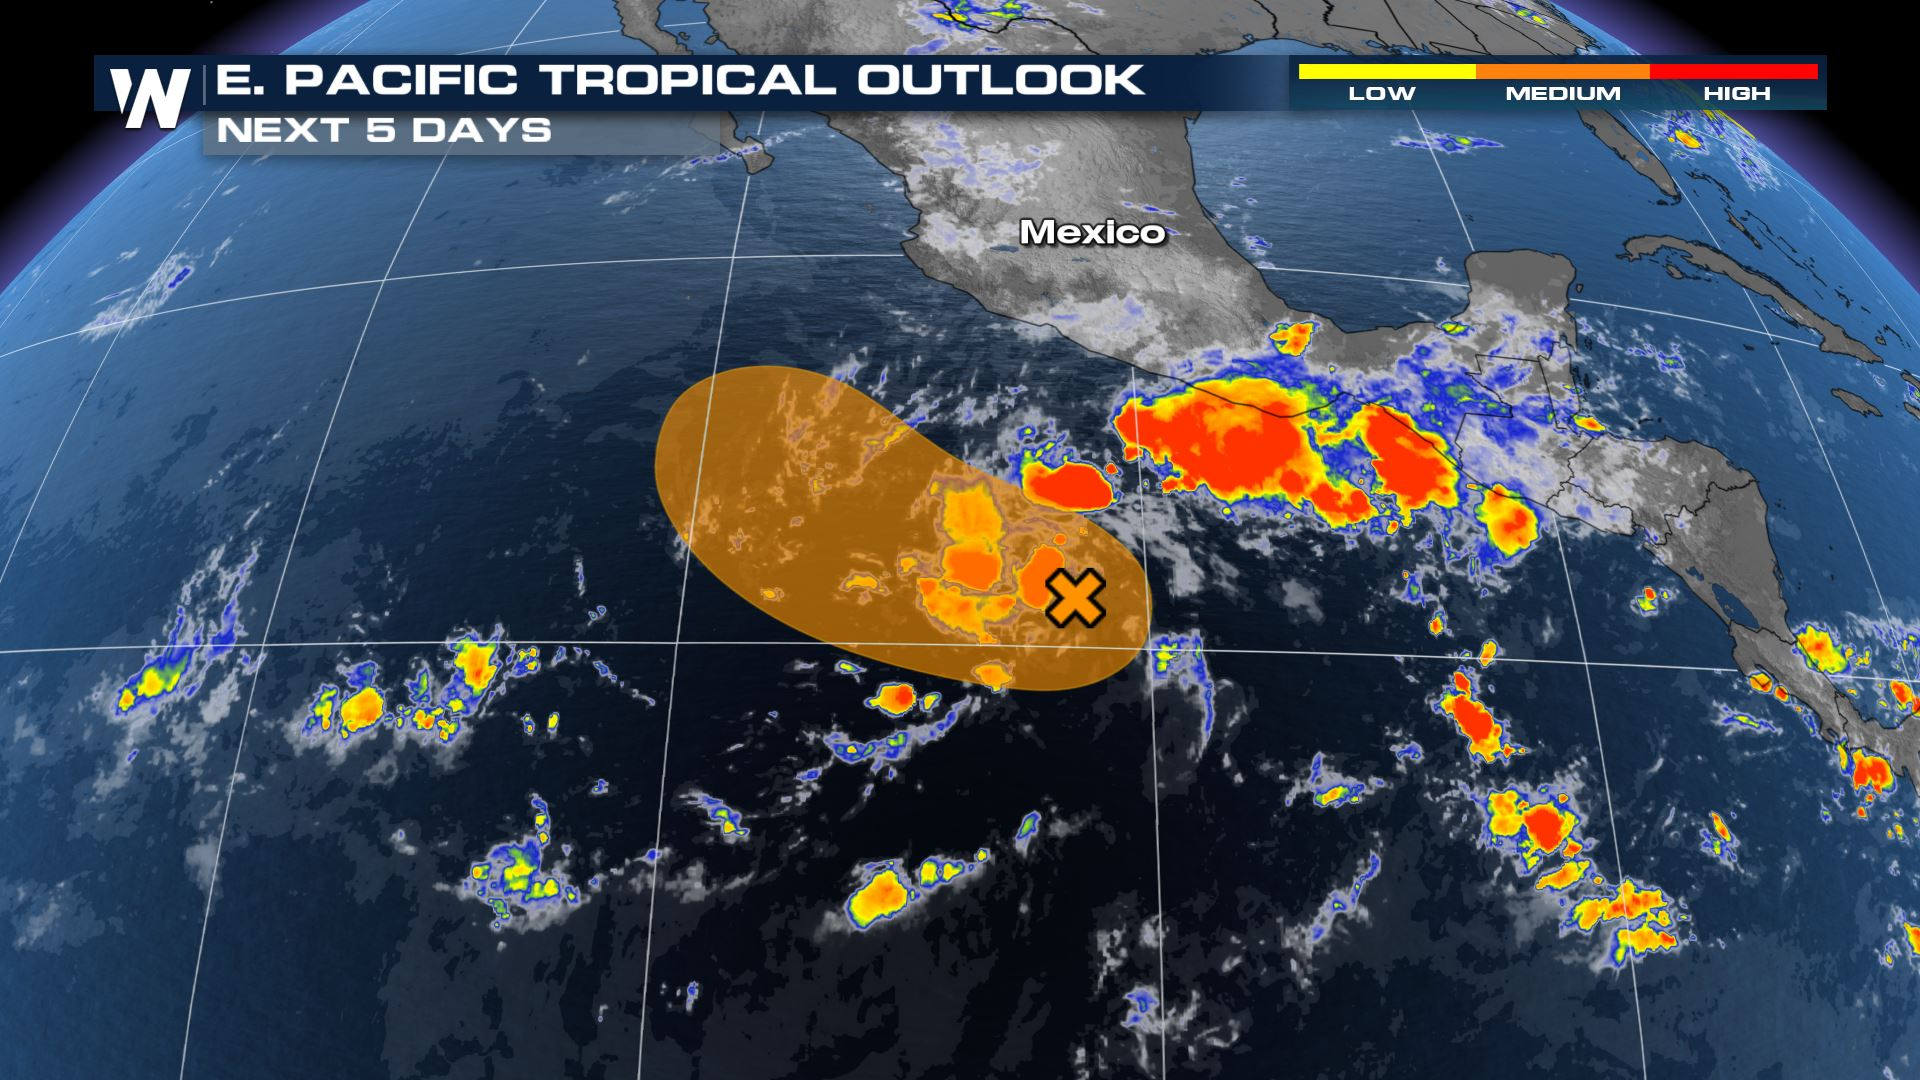 Low in the Eastern Pacific Could Develop into First Tropical System of the Season